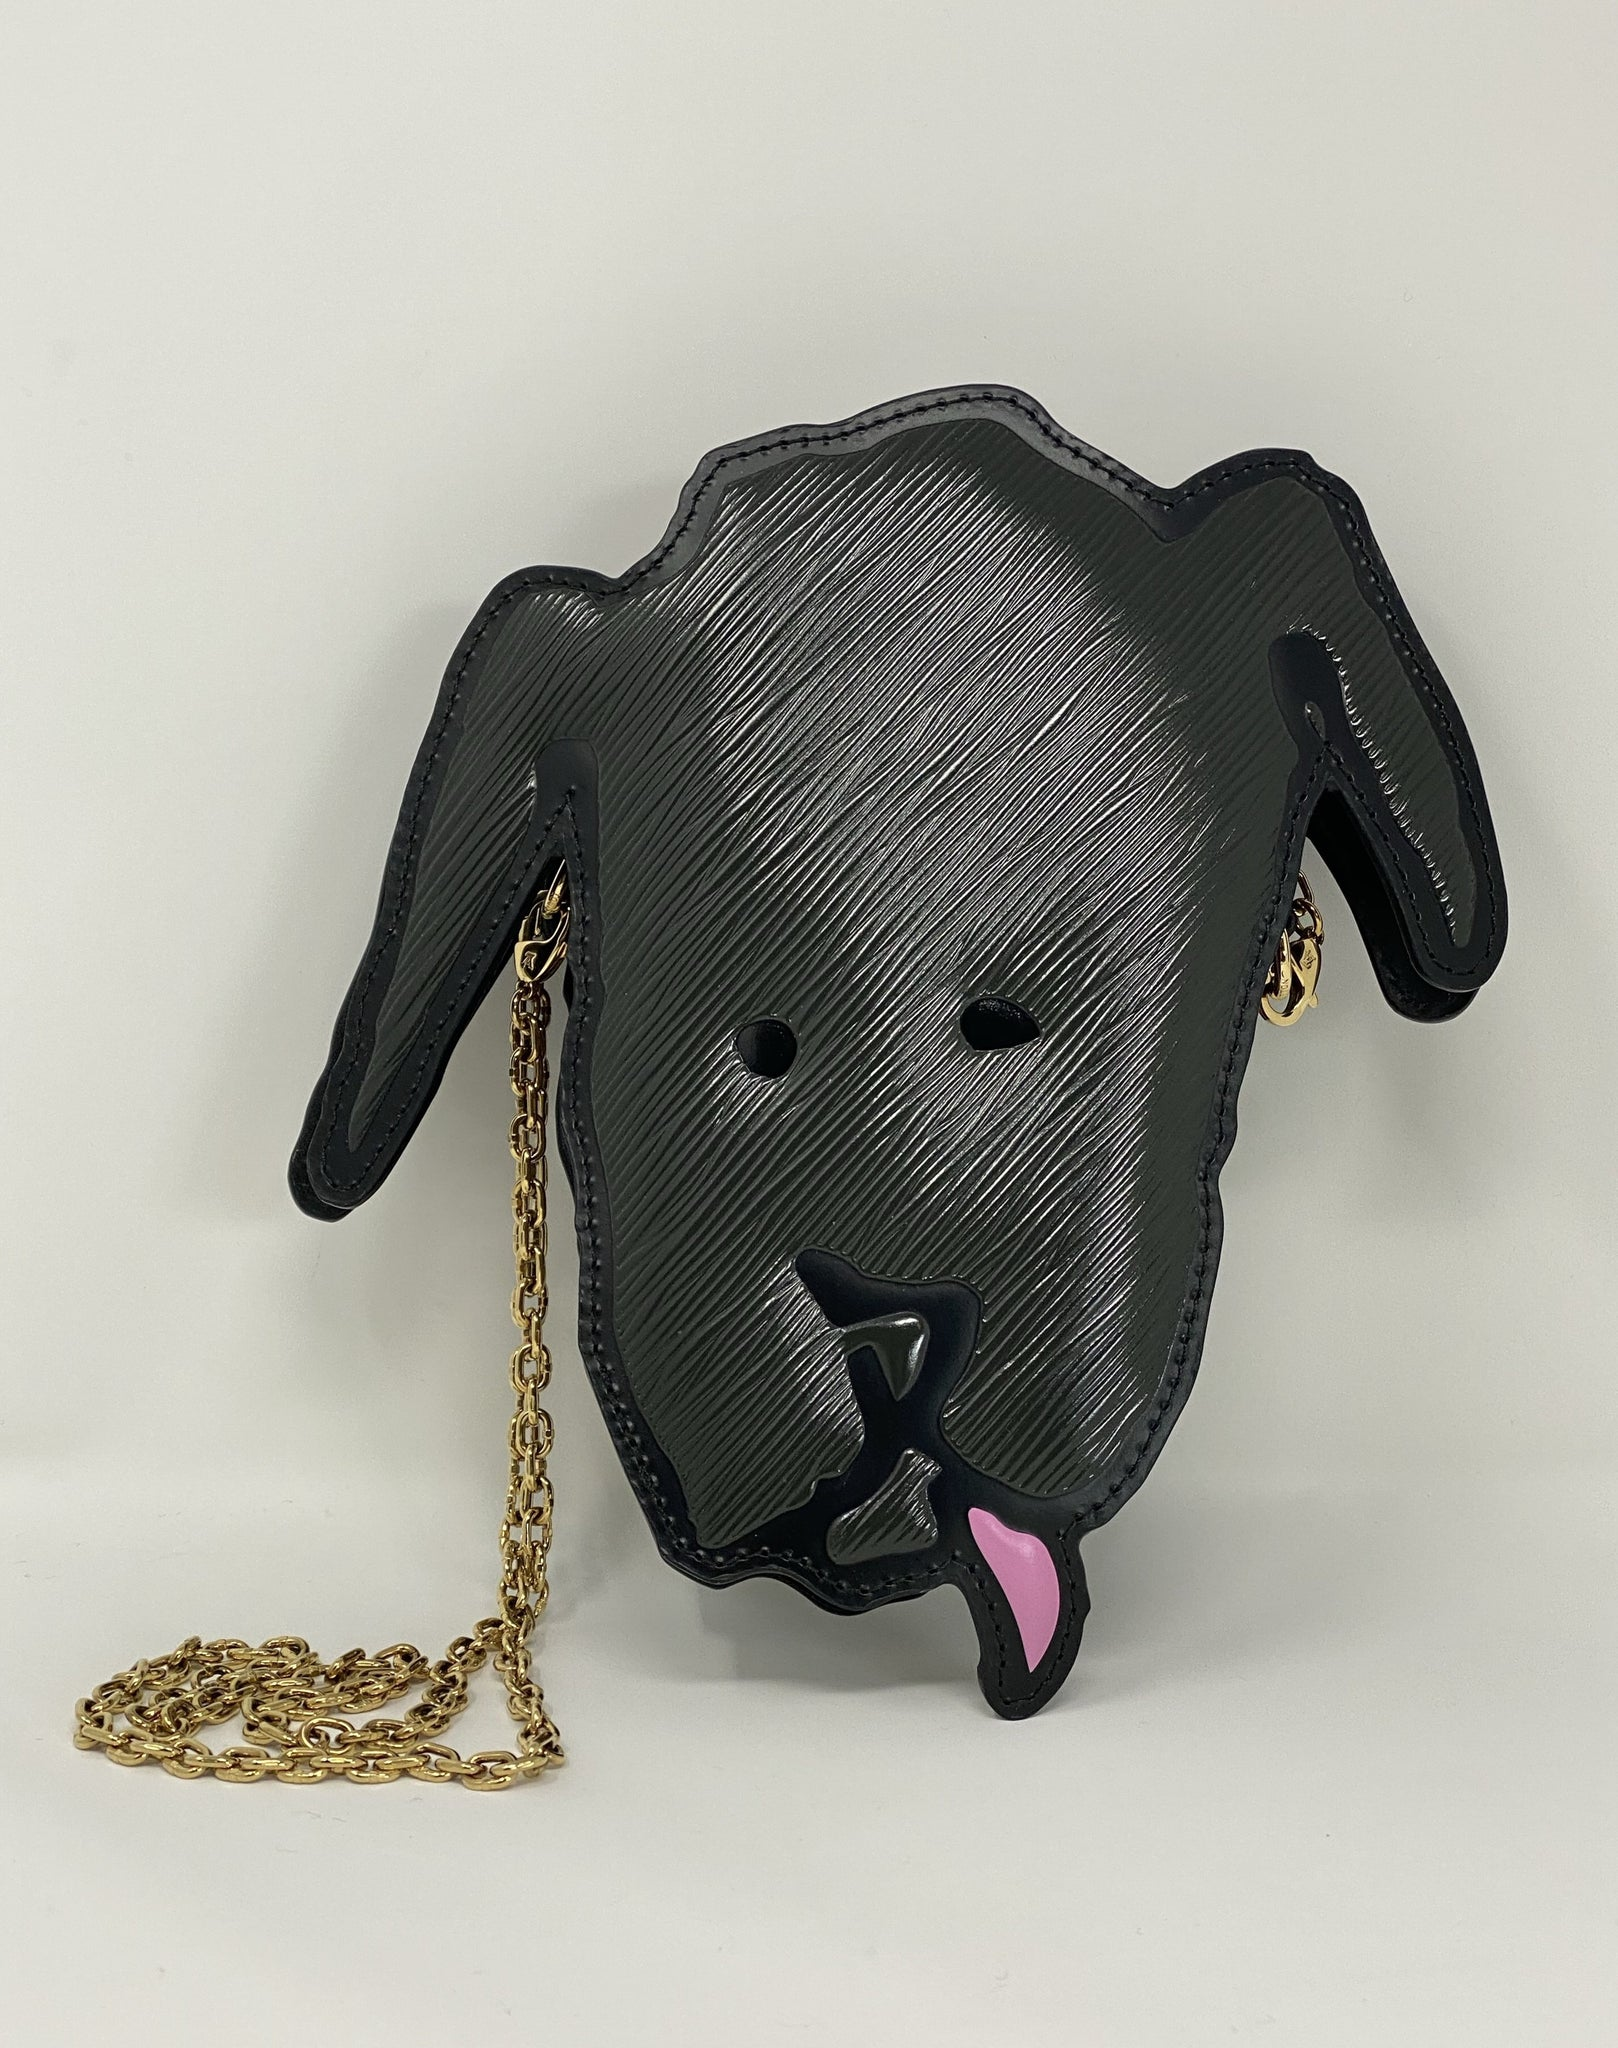 Louis Vuitton Limited Edition Grace Coddington Dog Bag